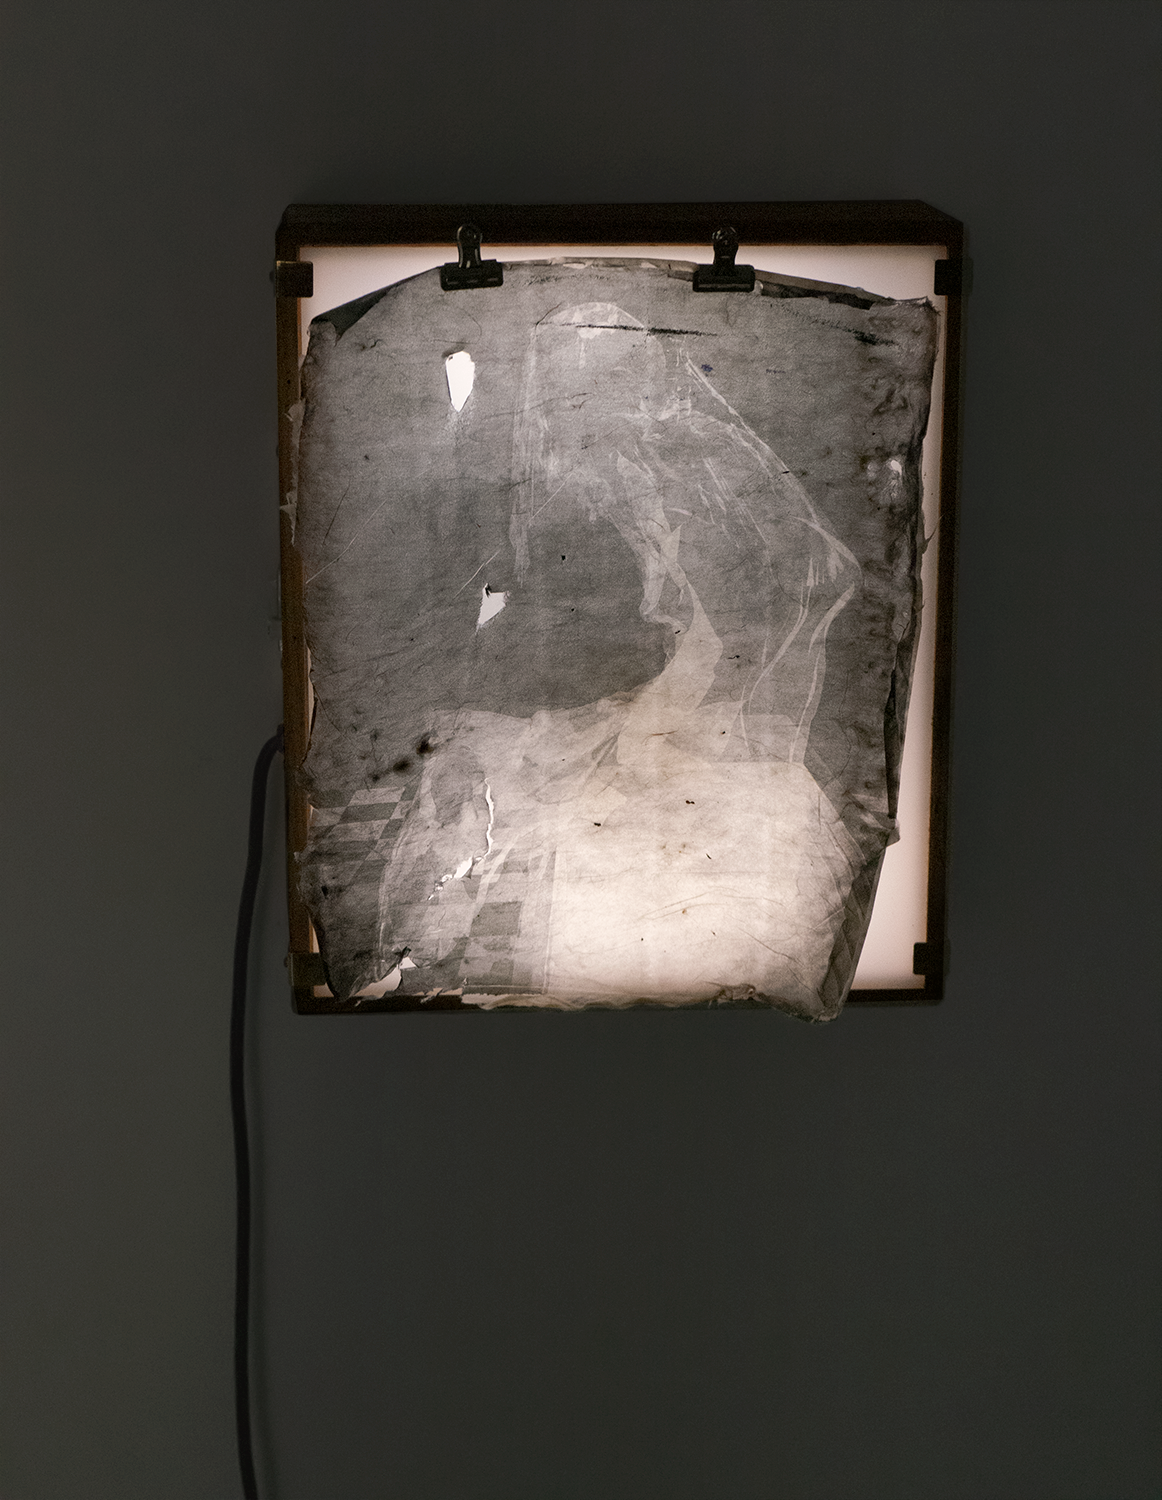 A black and white print on transparent paper is held up by a clip above a lightbox that illuminates it similar to an x-ray. The image, not easily decipherable, is an alternate angle of the video in the series, in which a veiled, 500-year old Mona Lisa sits on top of a medical exam table.